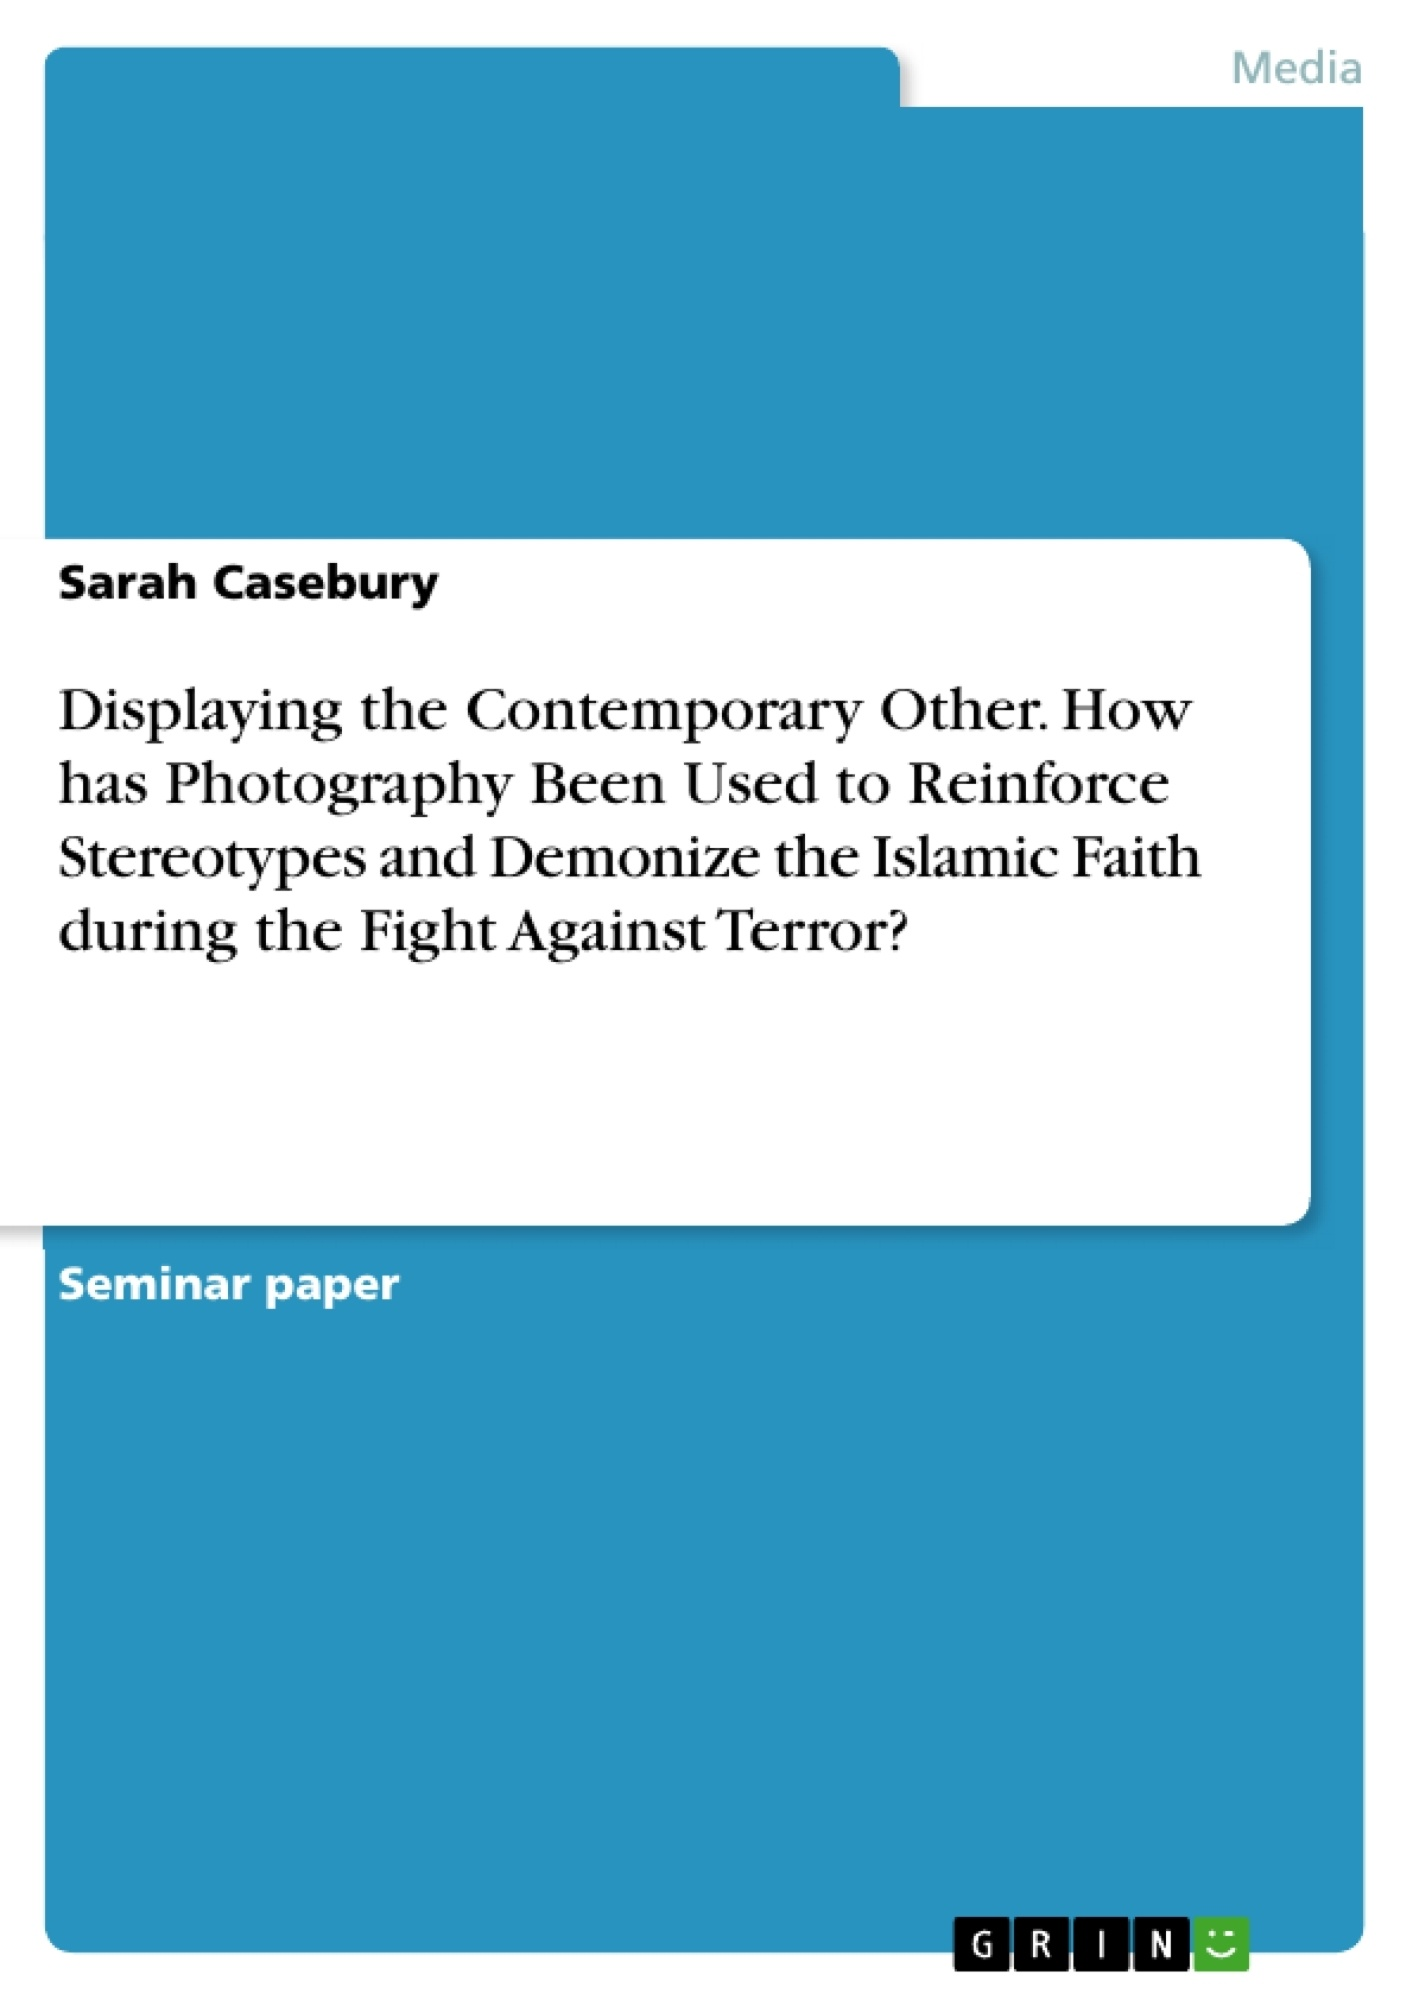 bachelor thesis terrorism Krishna ranabhat effects of terrorism in tourism industry a case study of 9/11 terrorist attacks in world trade center bachelor's thesis centria university of.